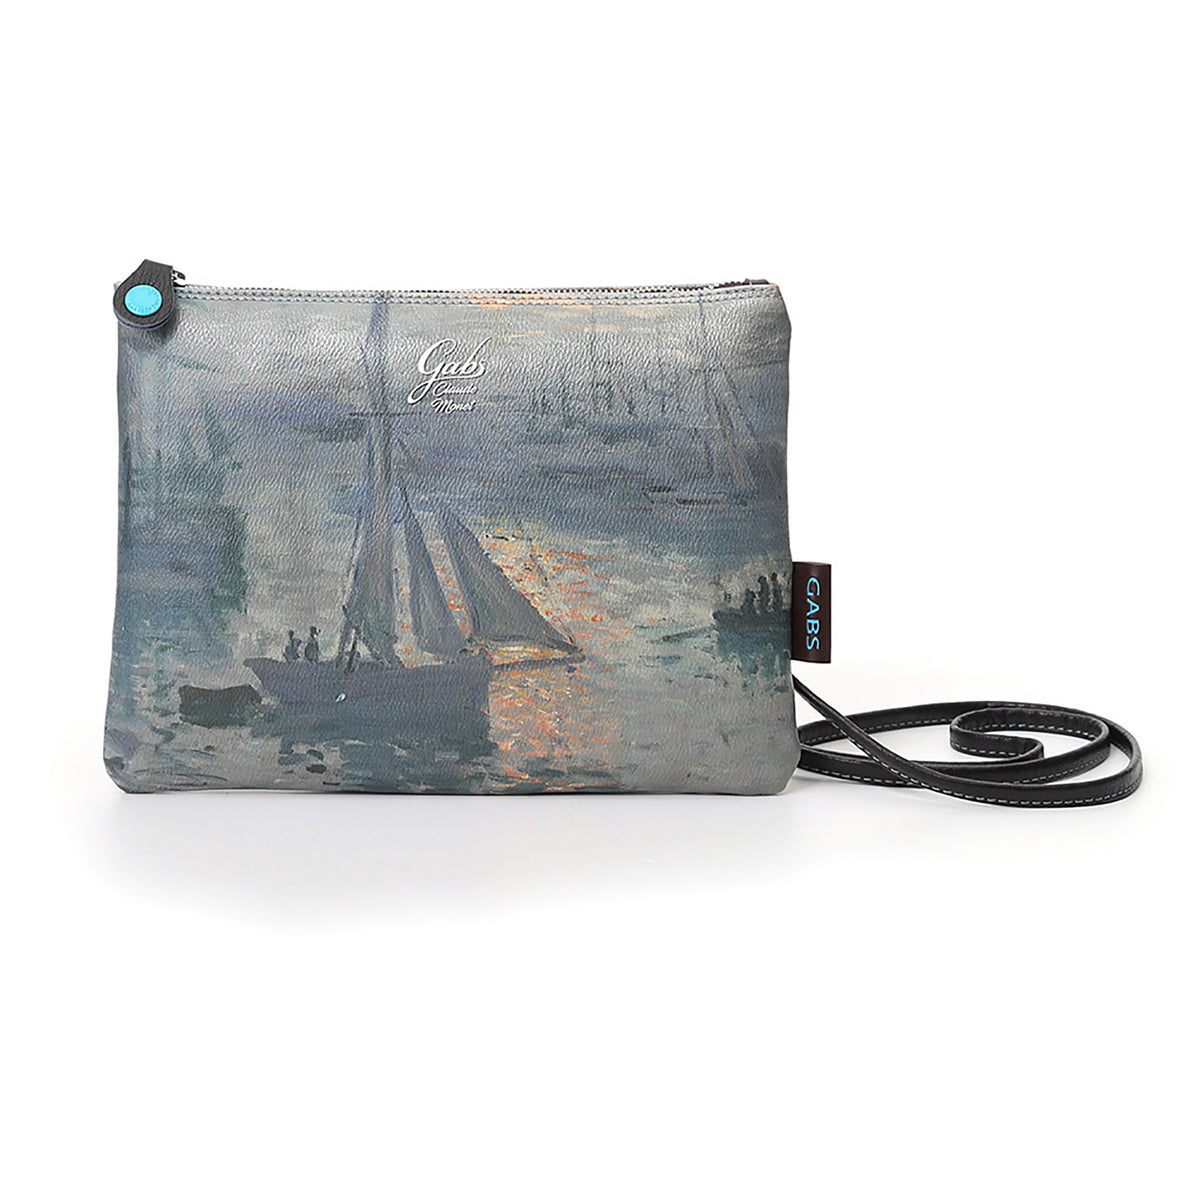 Clutch Bag featuring Monet's, Sunrise, by Gabs, Italy-Front view of bag | Getty Store